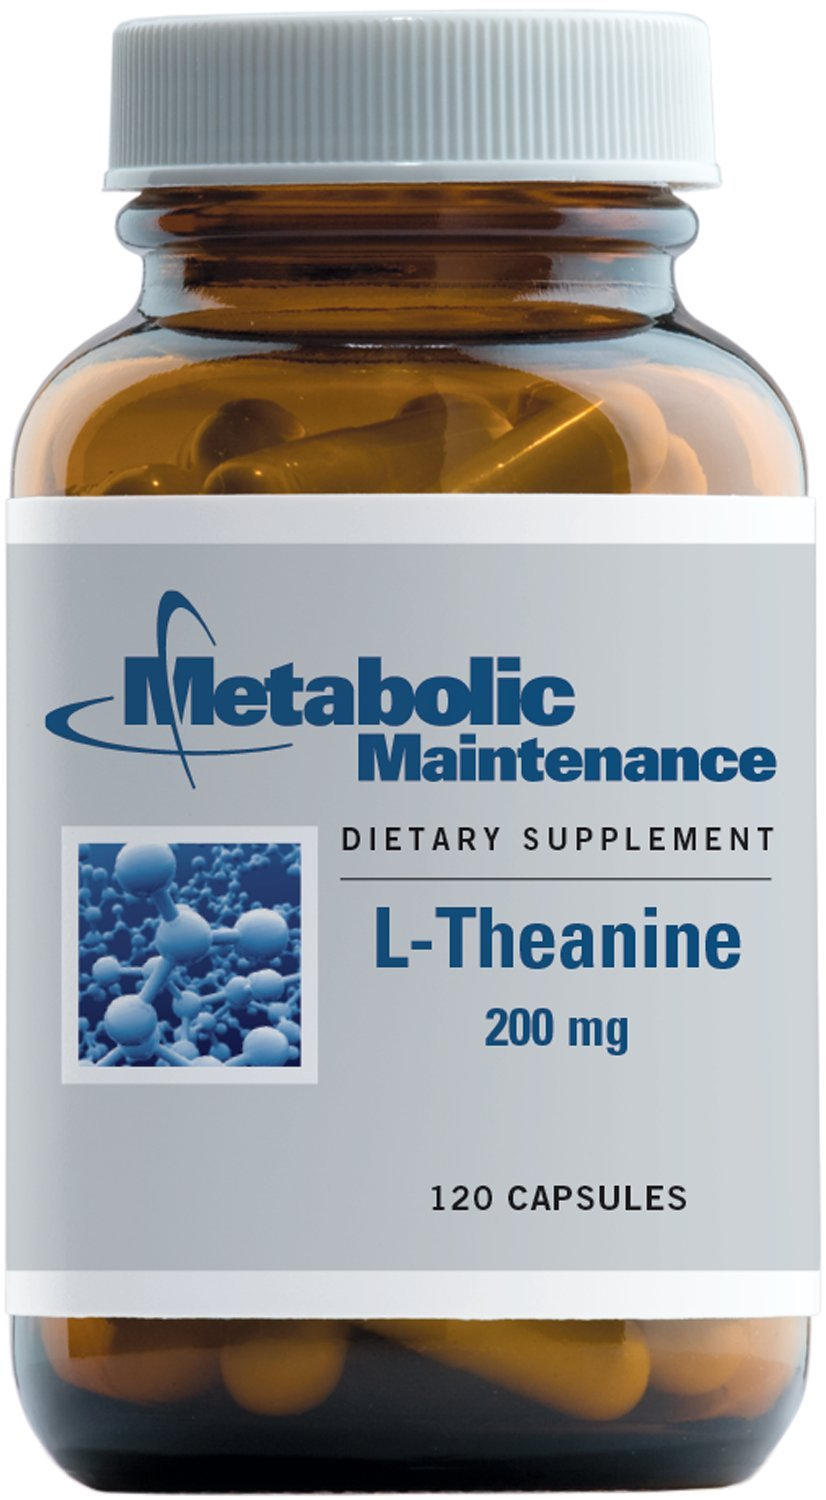 Metabolic Maintenance - L-Theanine - Relaxation + Immune Support, GABA Precursor, 200 mg, 120 Capsules